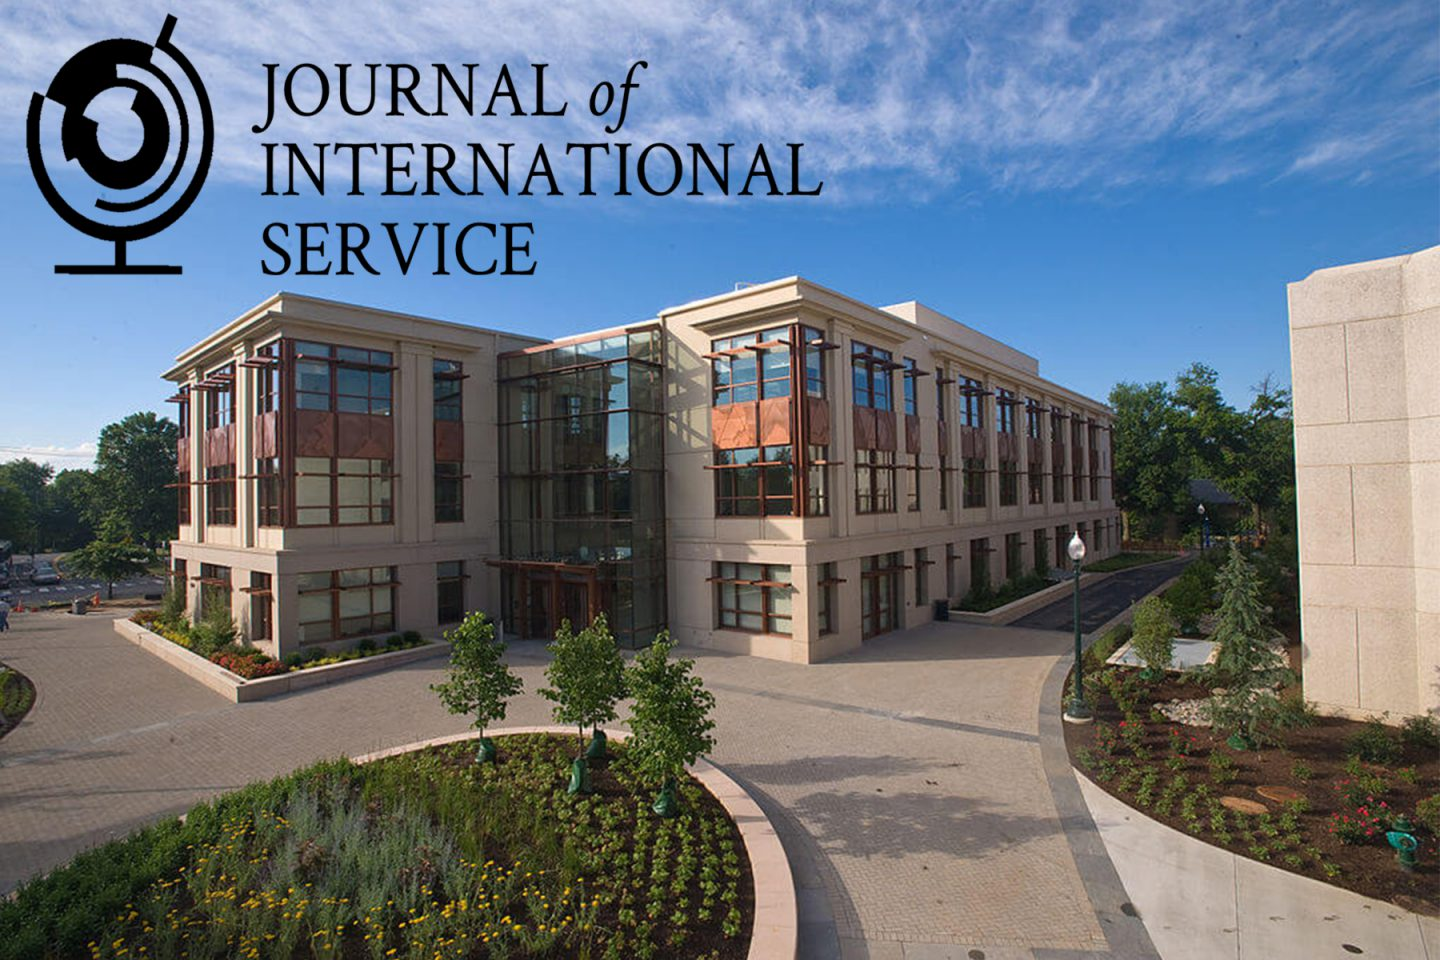 Journal of International Service